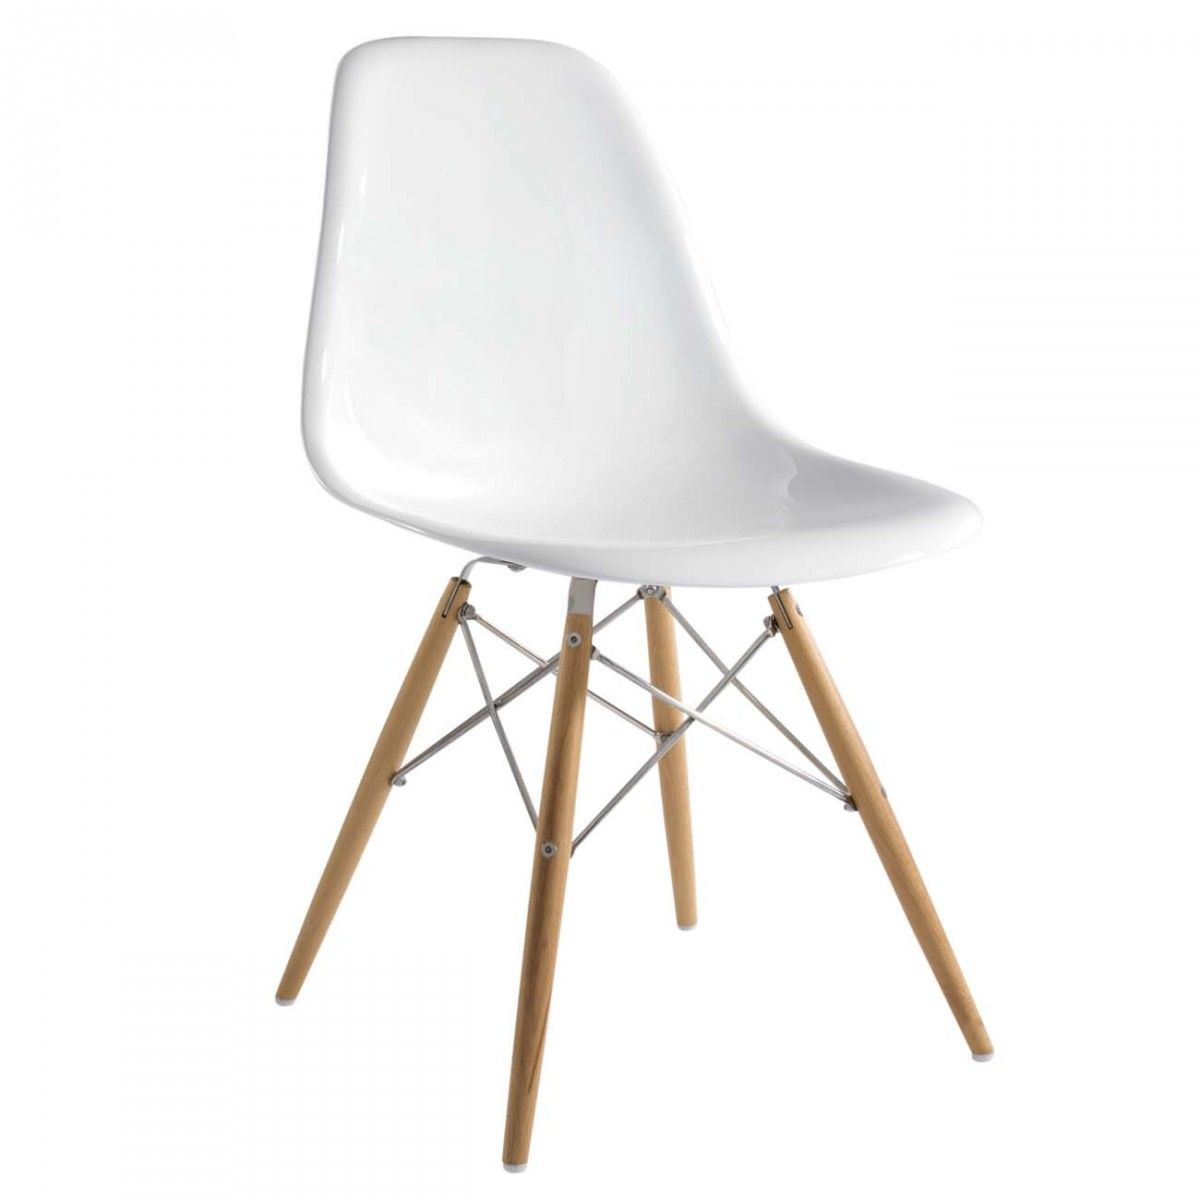 Dsw Inspired By Ray And Charles Eames Eames Dining Chair Dsw